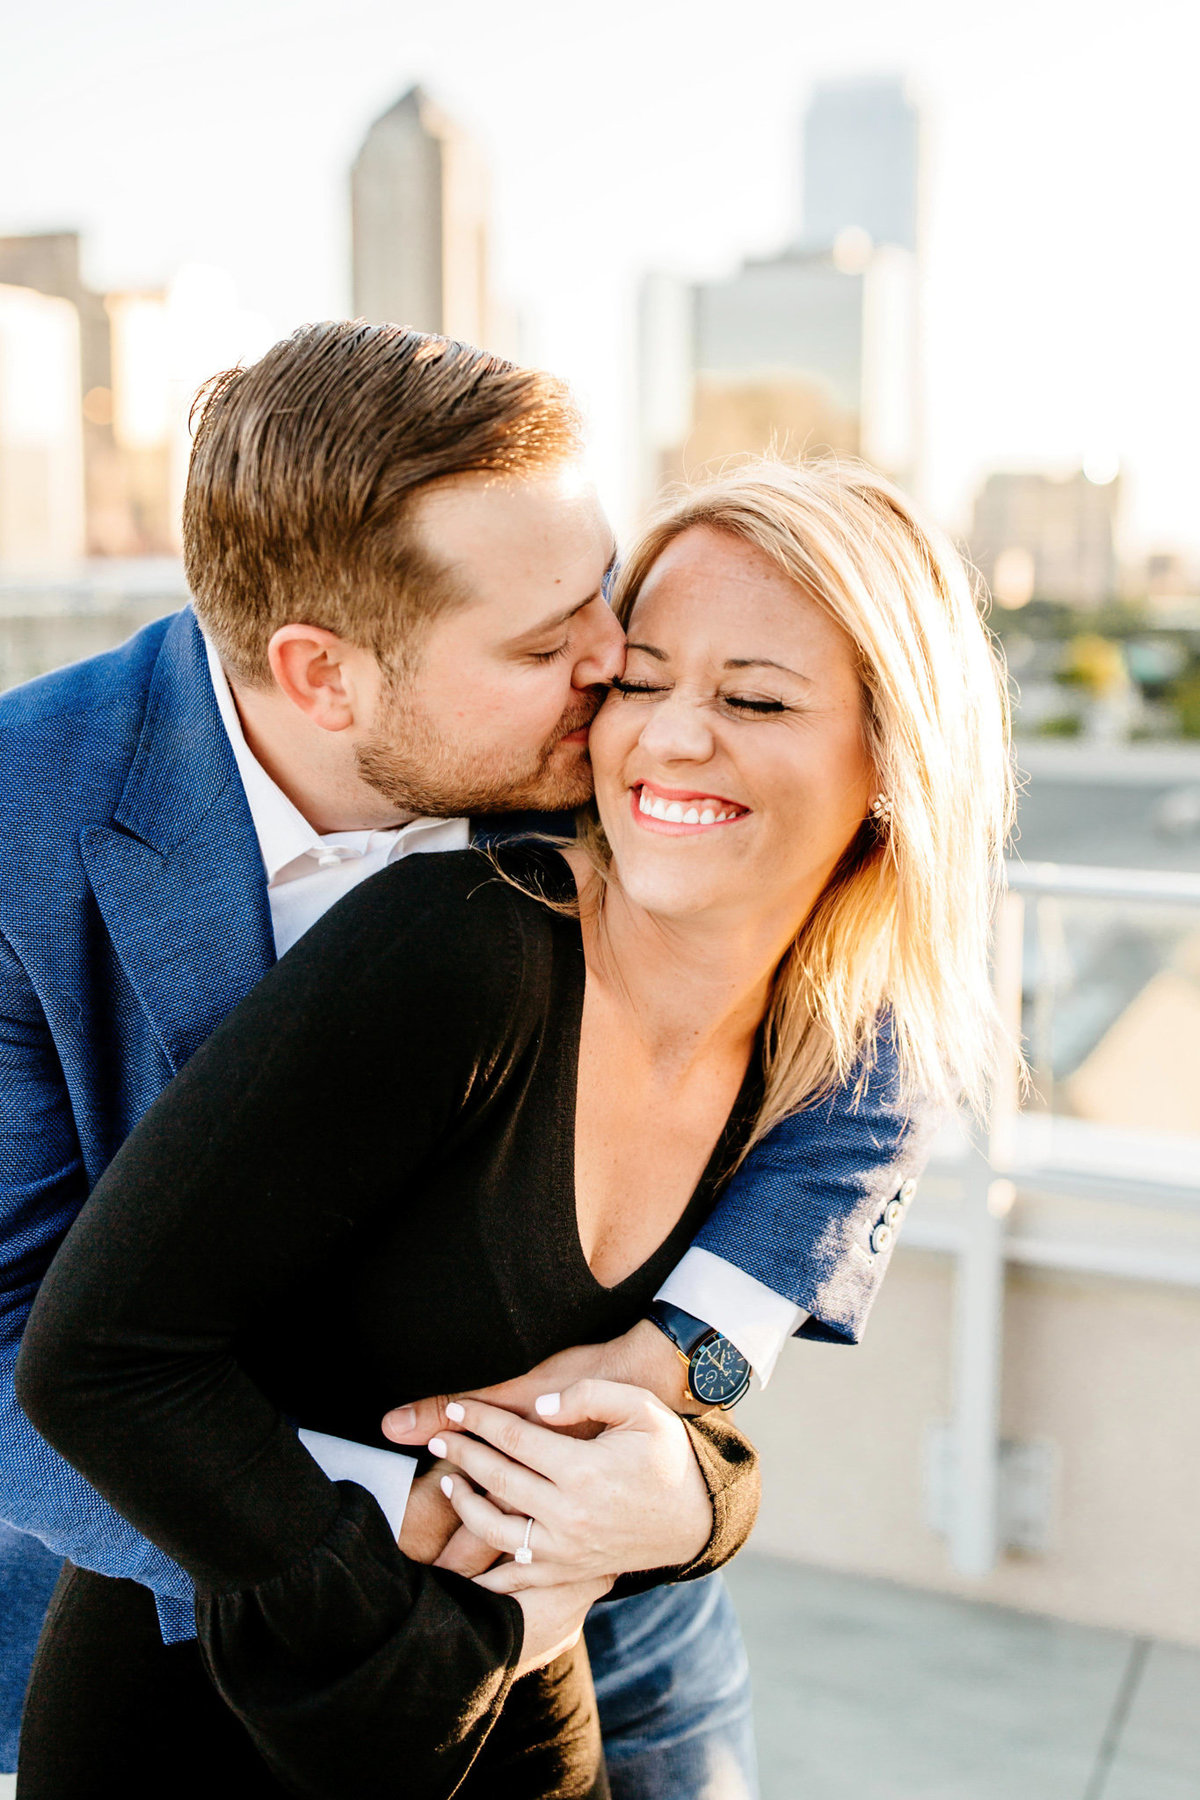 Eric & Megan - Downtown Dallas Rooftop Proposal & Engagement Session-79